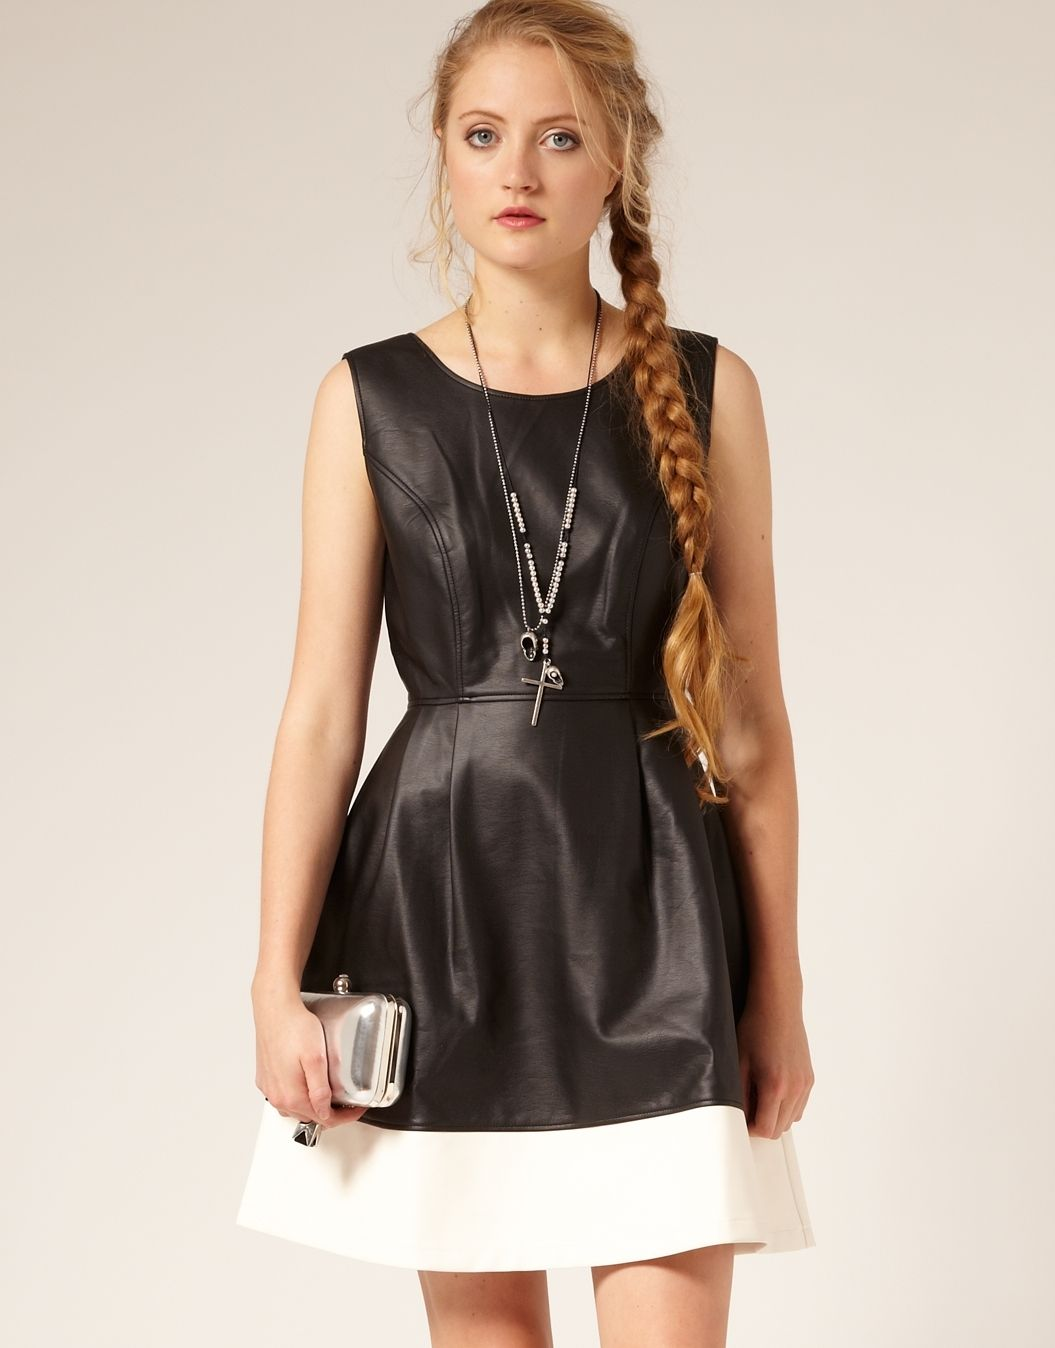 Glassons - Leather Look Dress | Leather look dress ...